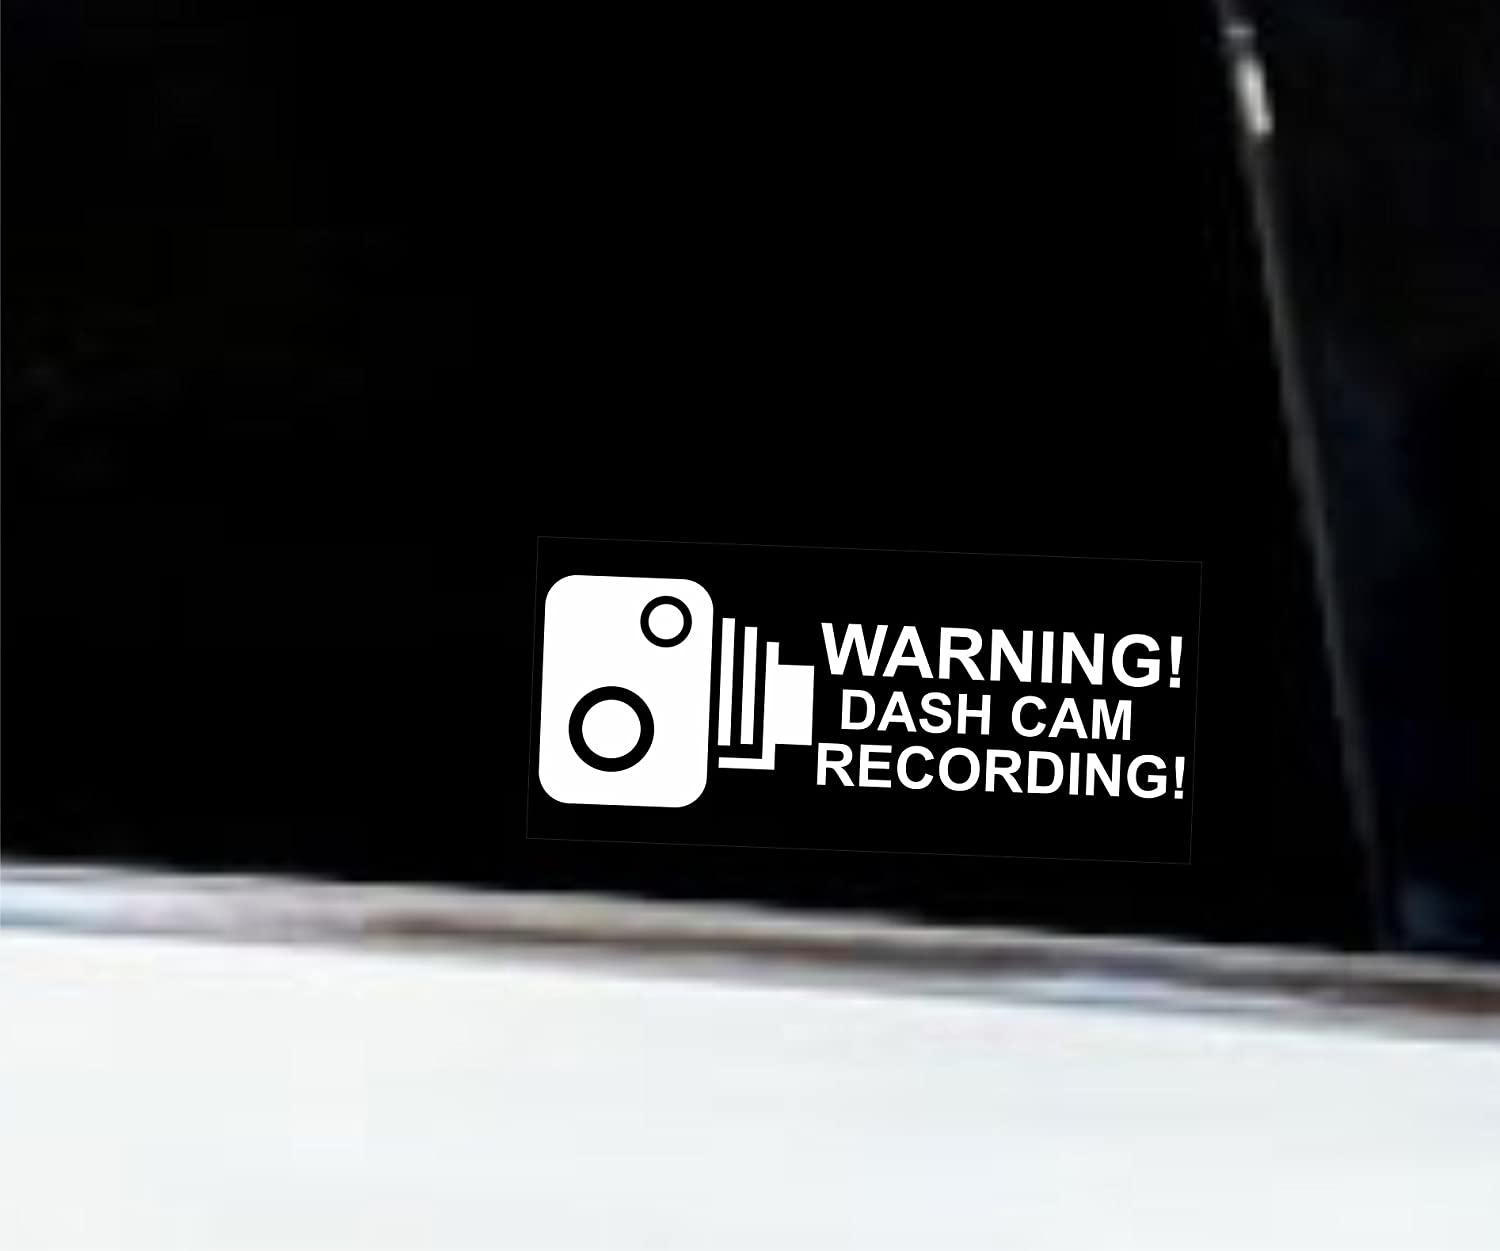 Bus Truck 5 Pieces Coach JDM//Die Cut Indigos UG Warning Dash CAM Safety Window Sticker Transparent Inside Sticker//Bumper Security Signs Car CCTV Taxi,Mini Cab Van 92x44 mm